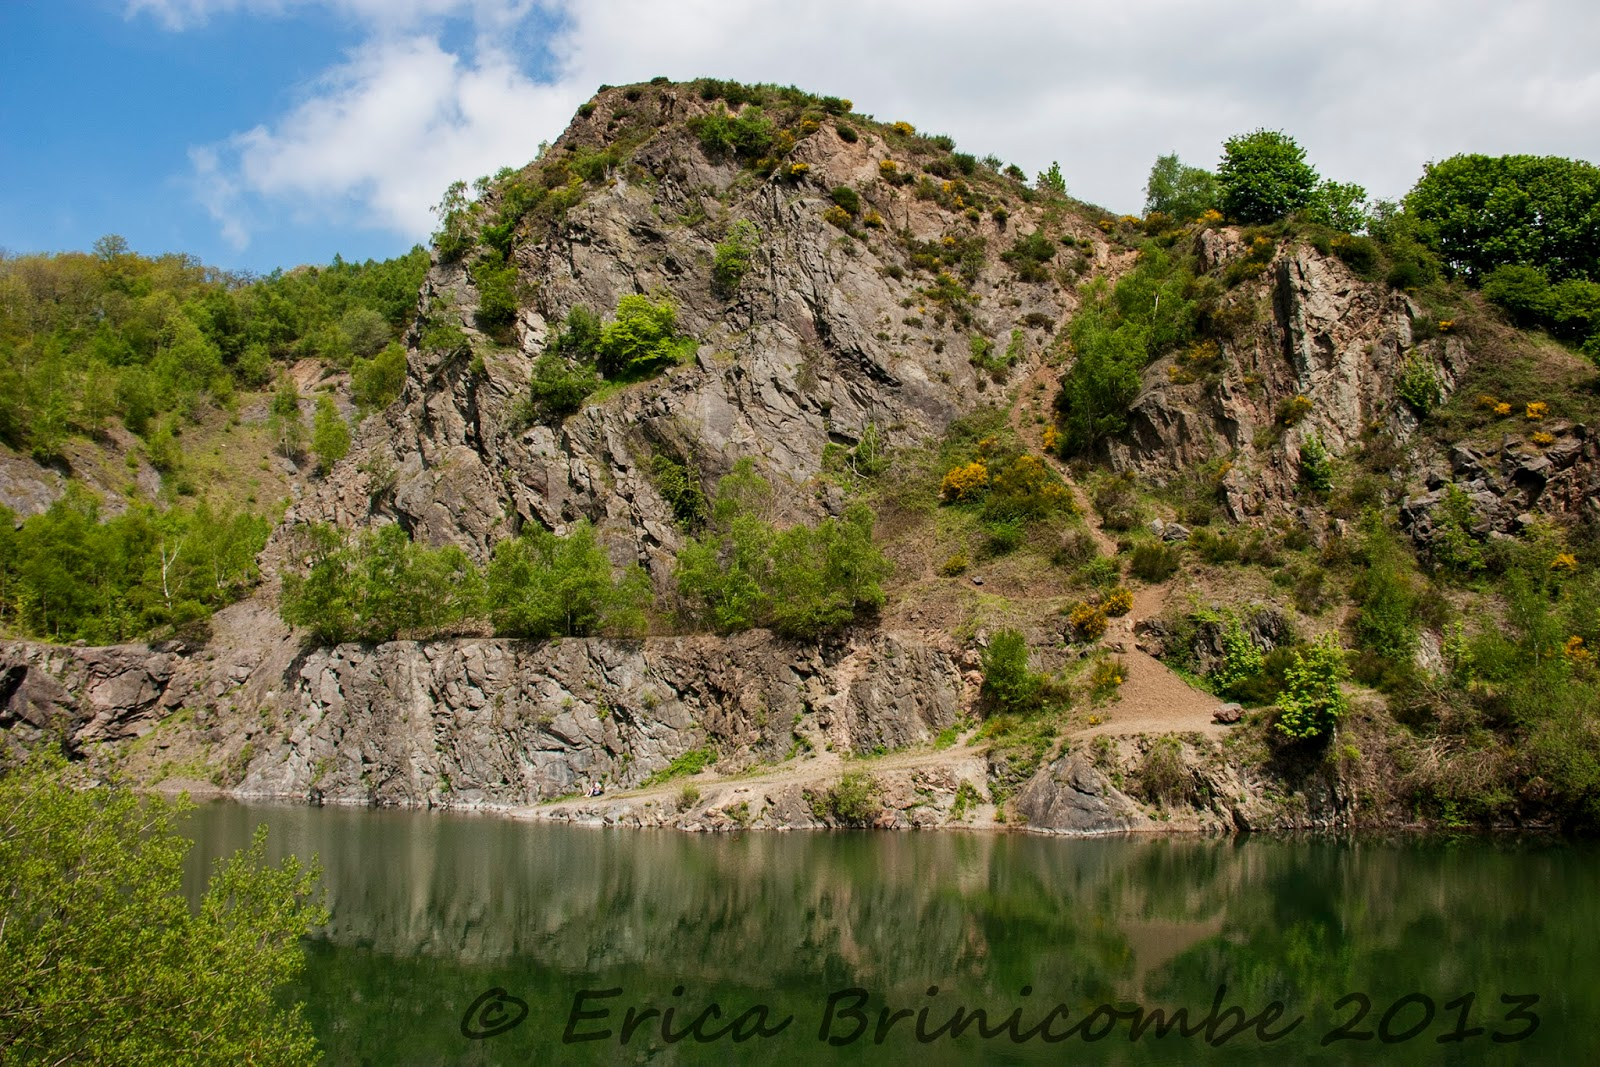 Erica brinicombe photography gullet quarry malvern for Landscape rock quarry alberta